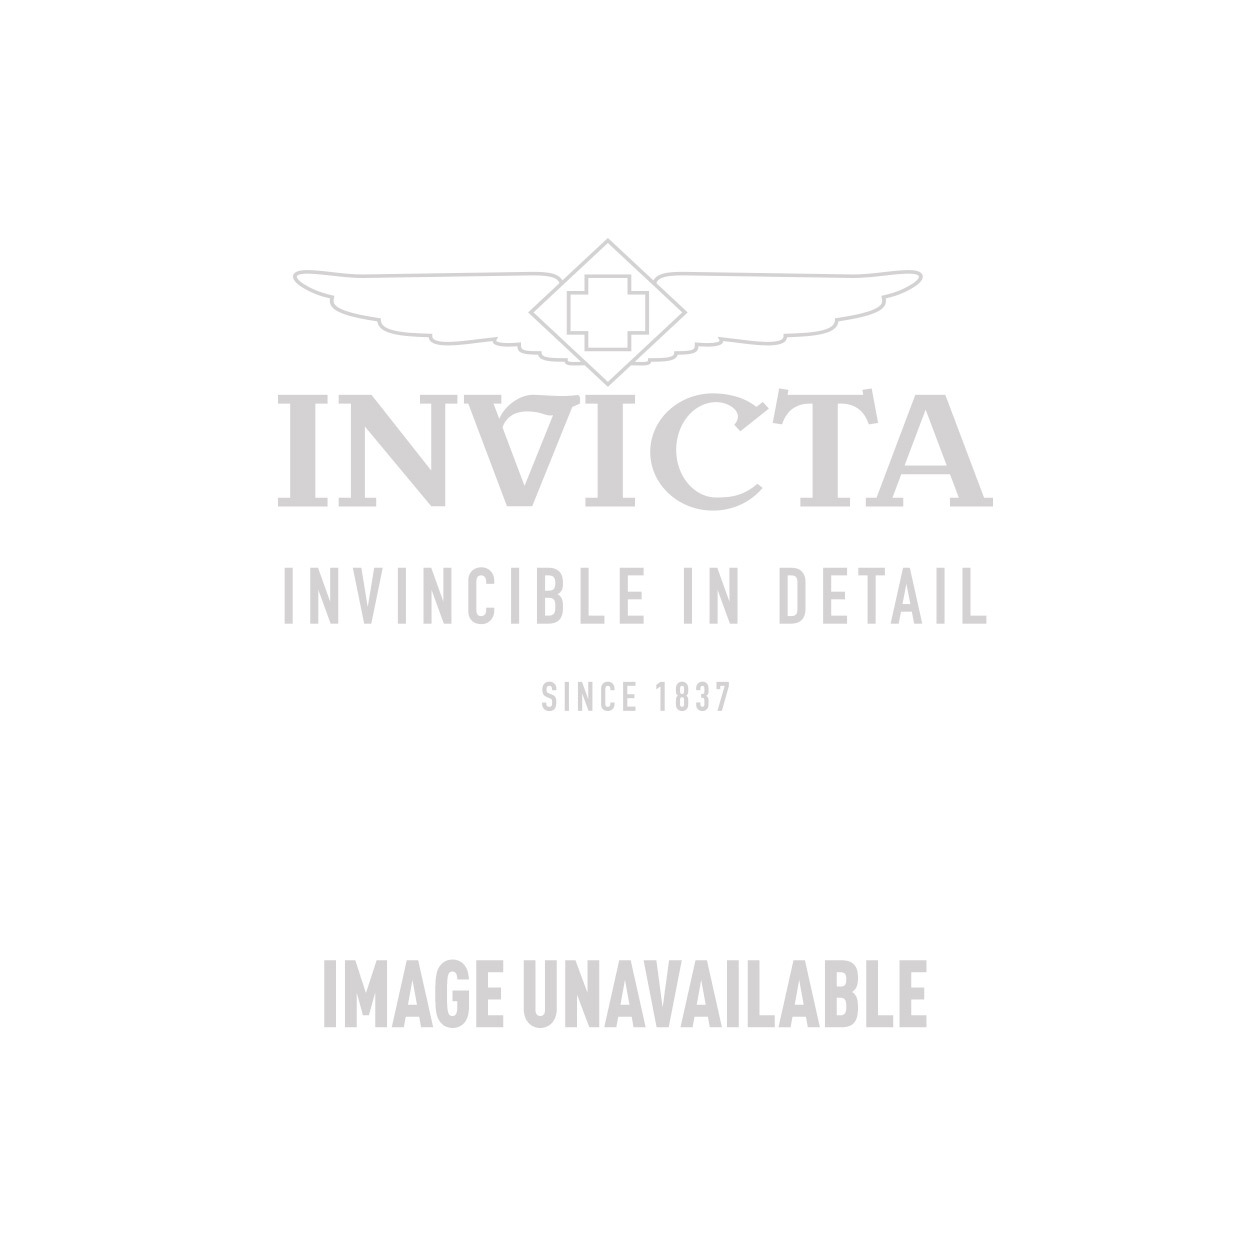 Invicta Specialty Quartz Watch - Gunmetal, Stainless Steel case Stainless Steel band - Model 15159